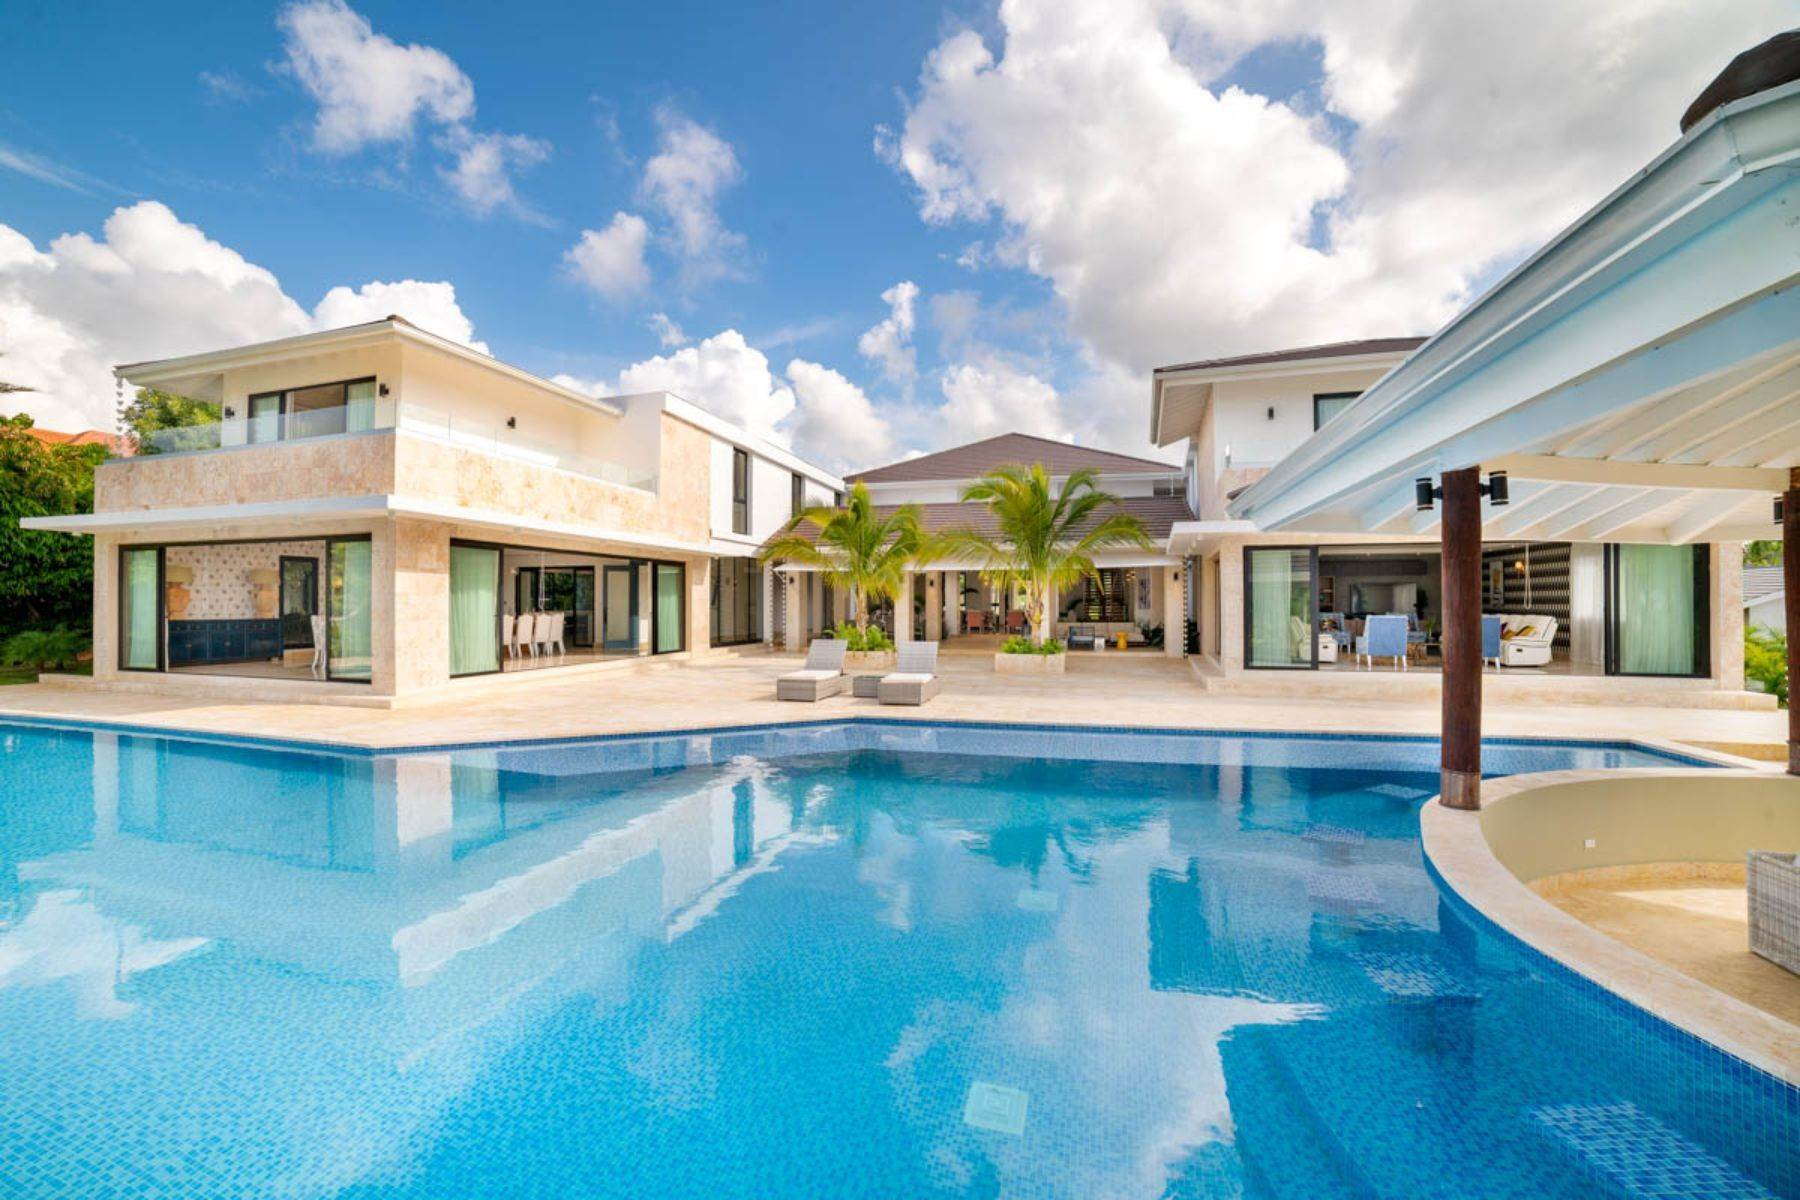 Single Family Homes for Sale at Las Lomas # 3 – Majestic and Awe-Inspiring Palatial Golf Residence Las Lomas # 3 Casa De Campo, La Romana 22000 Dominican Republic